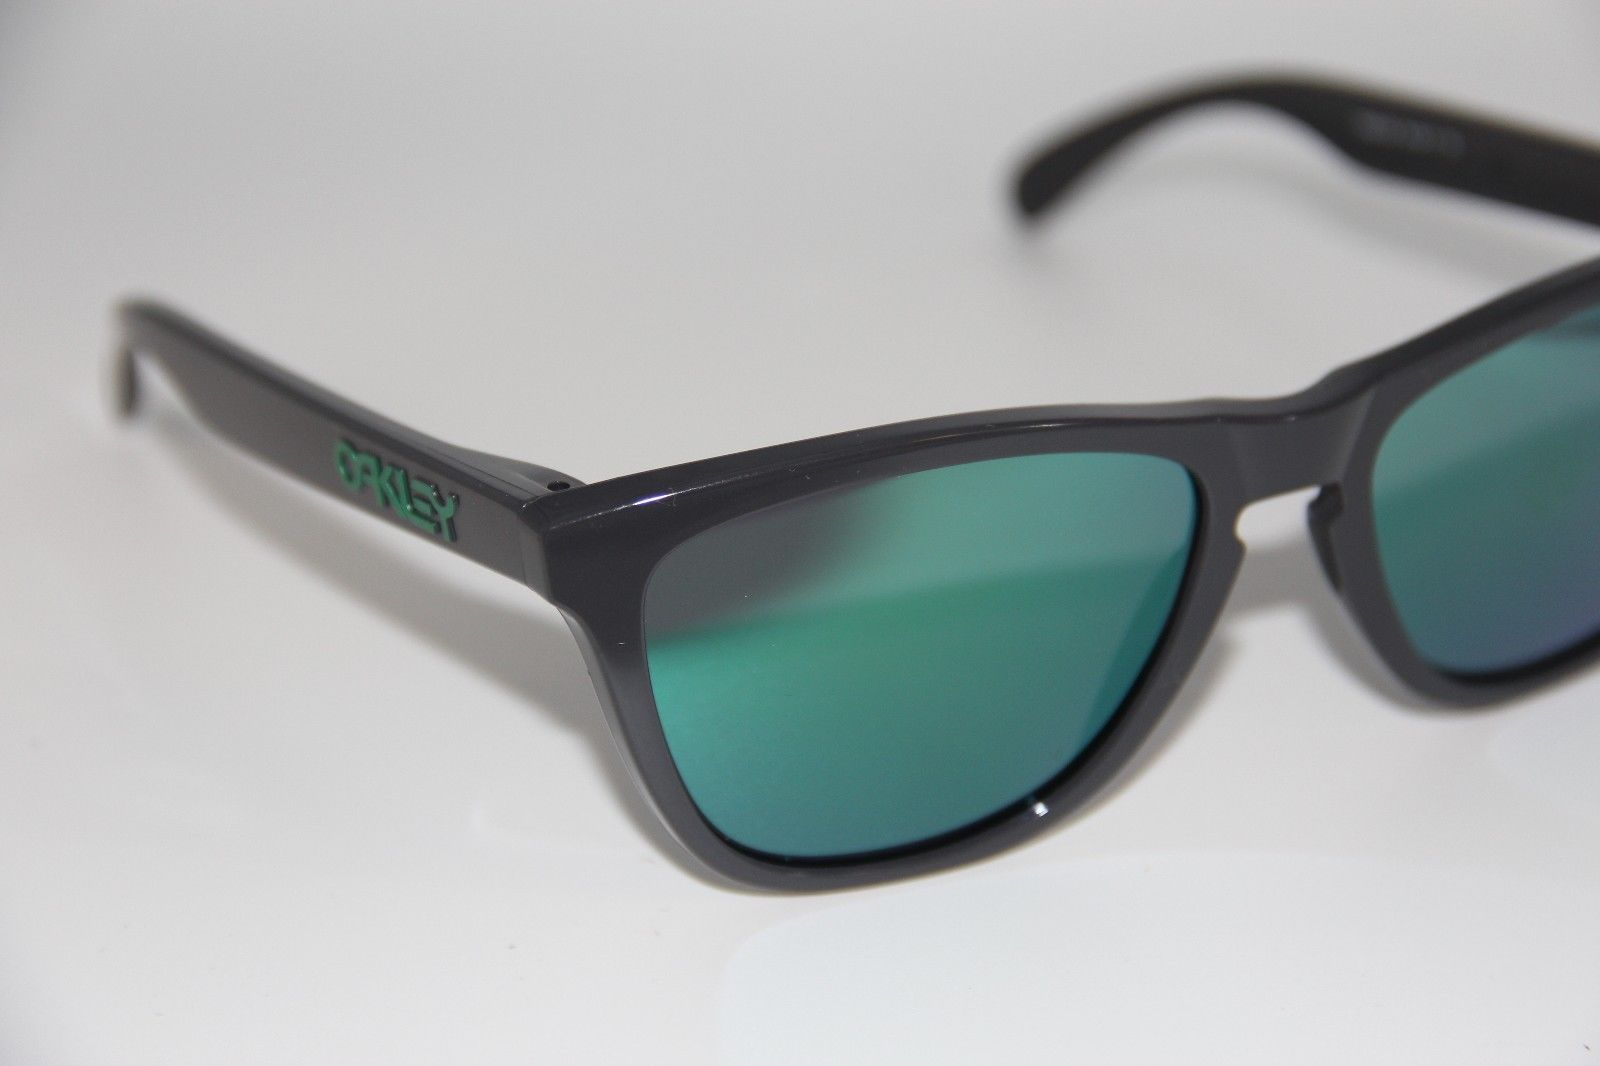 f1d088ee5a8 Oakley Jawbone Frame Only For Round Mirror « Heritage Malta